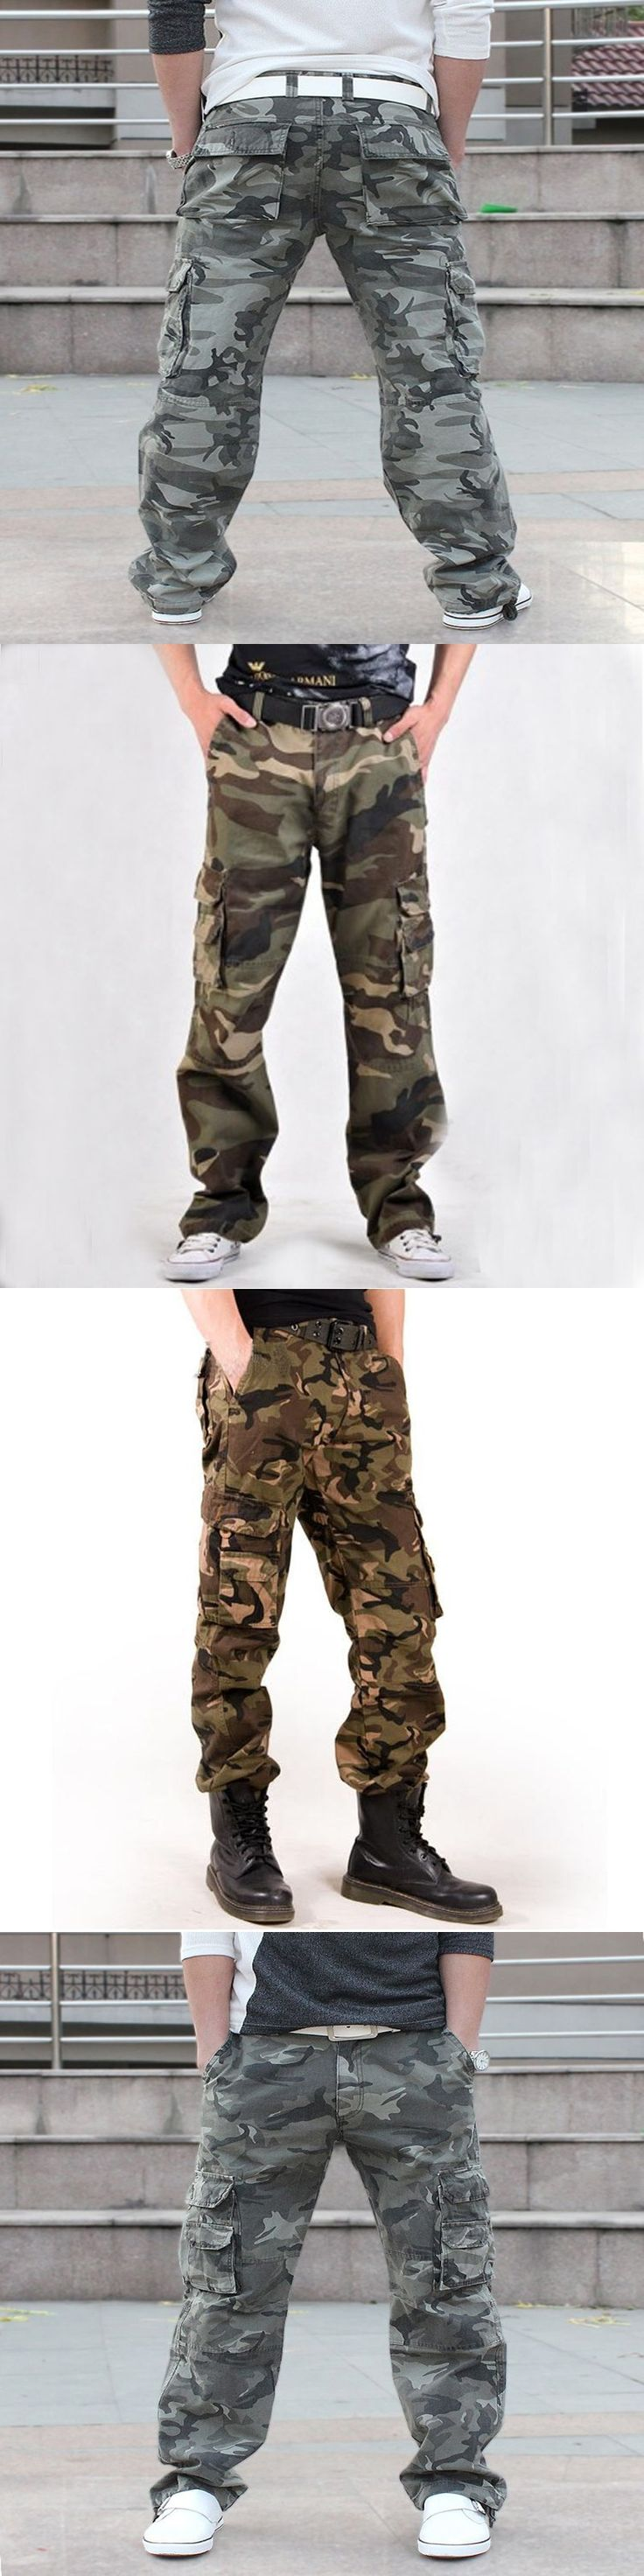 Army Militar Men's Trousers and Camo Pants with Side Pockets Combat Camouflage Overalls Fashion Baggy Cargo Pants for Men